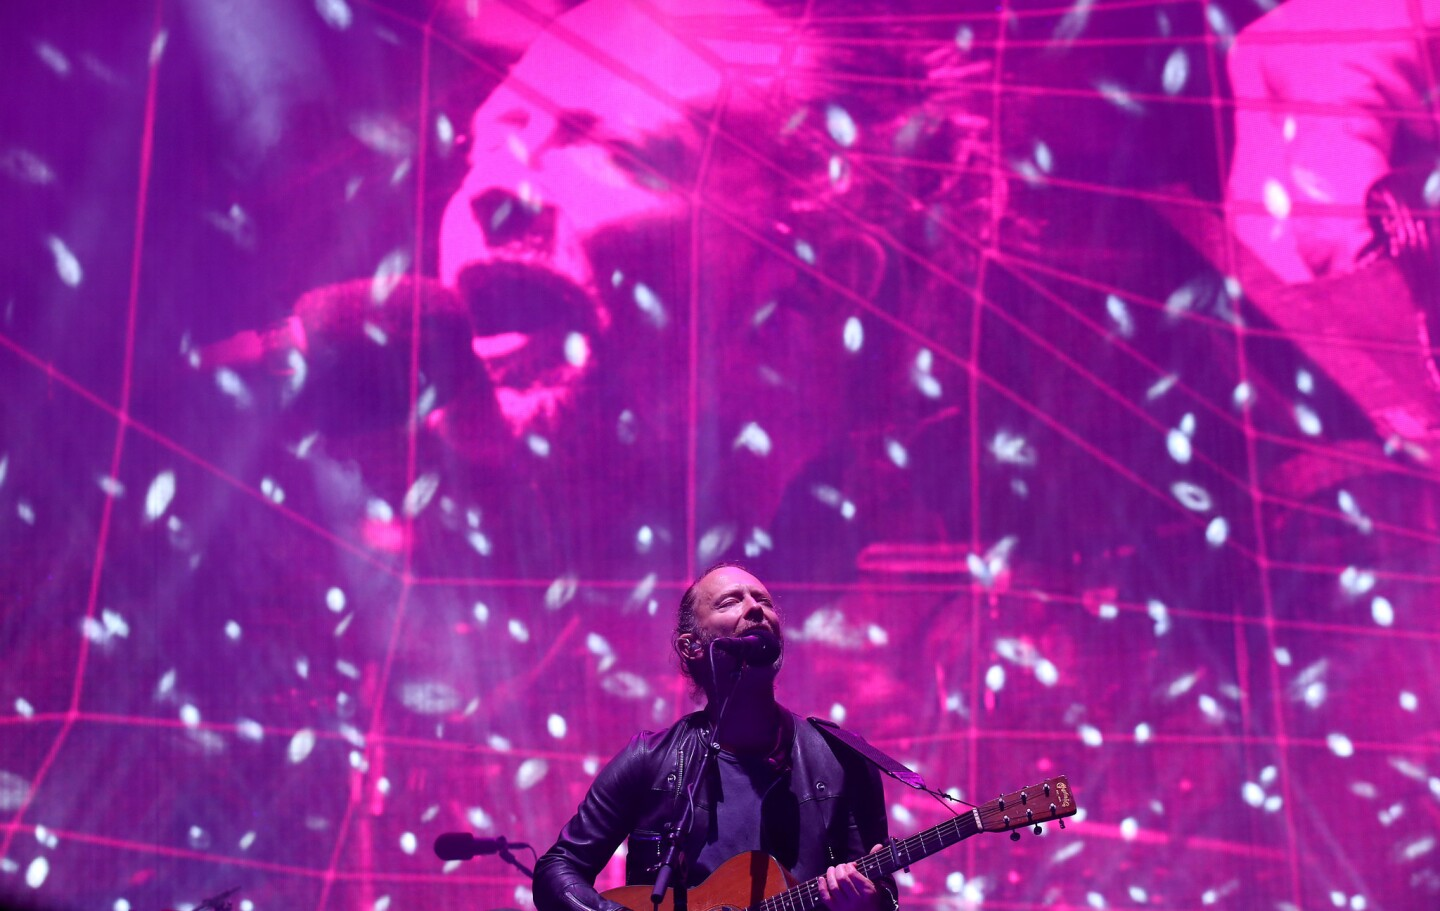 Thom Yorke of Radiohead performs on the Coachella Stage on day one of the festival.